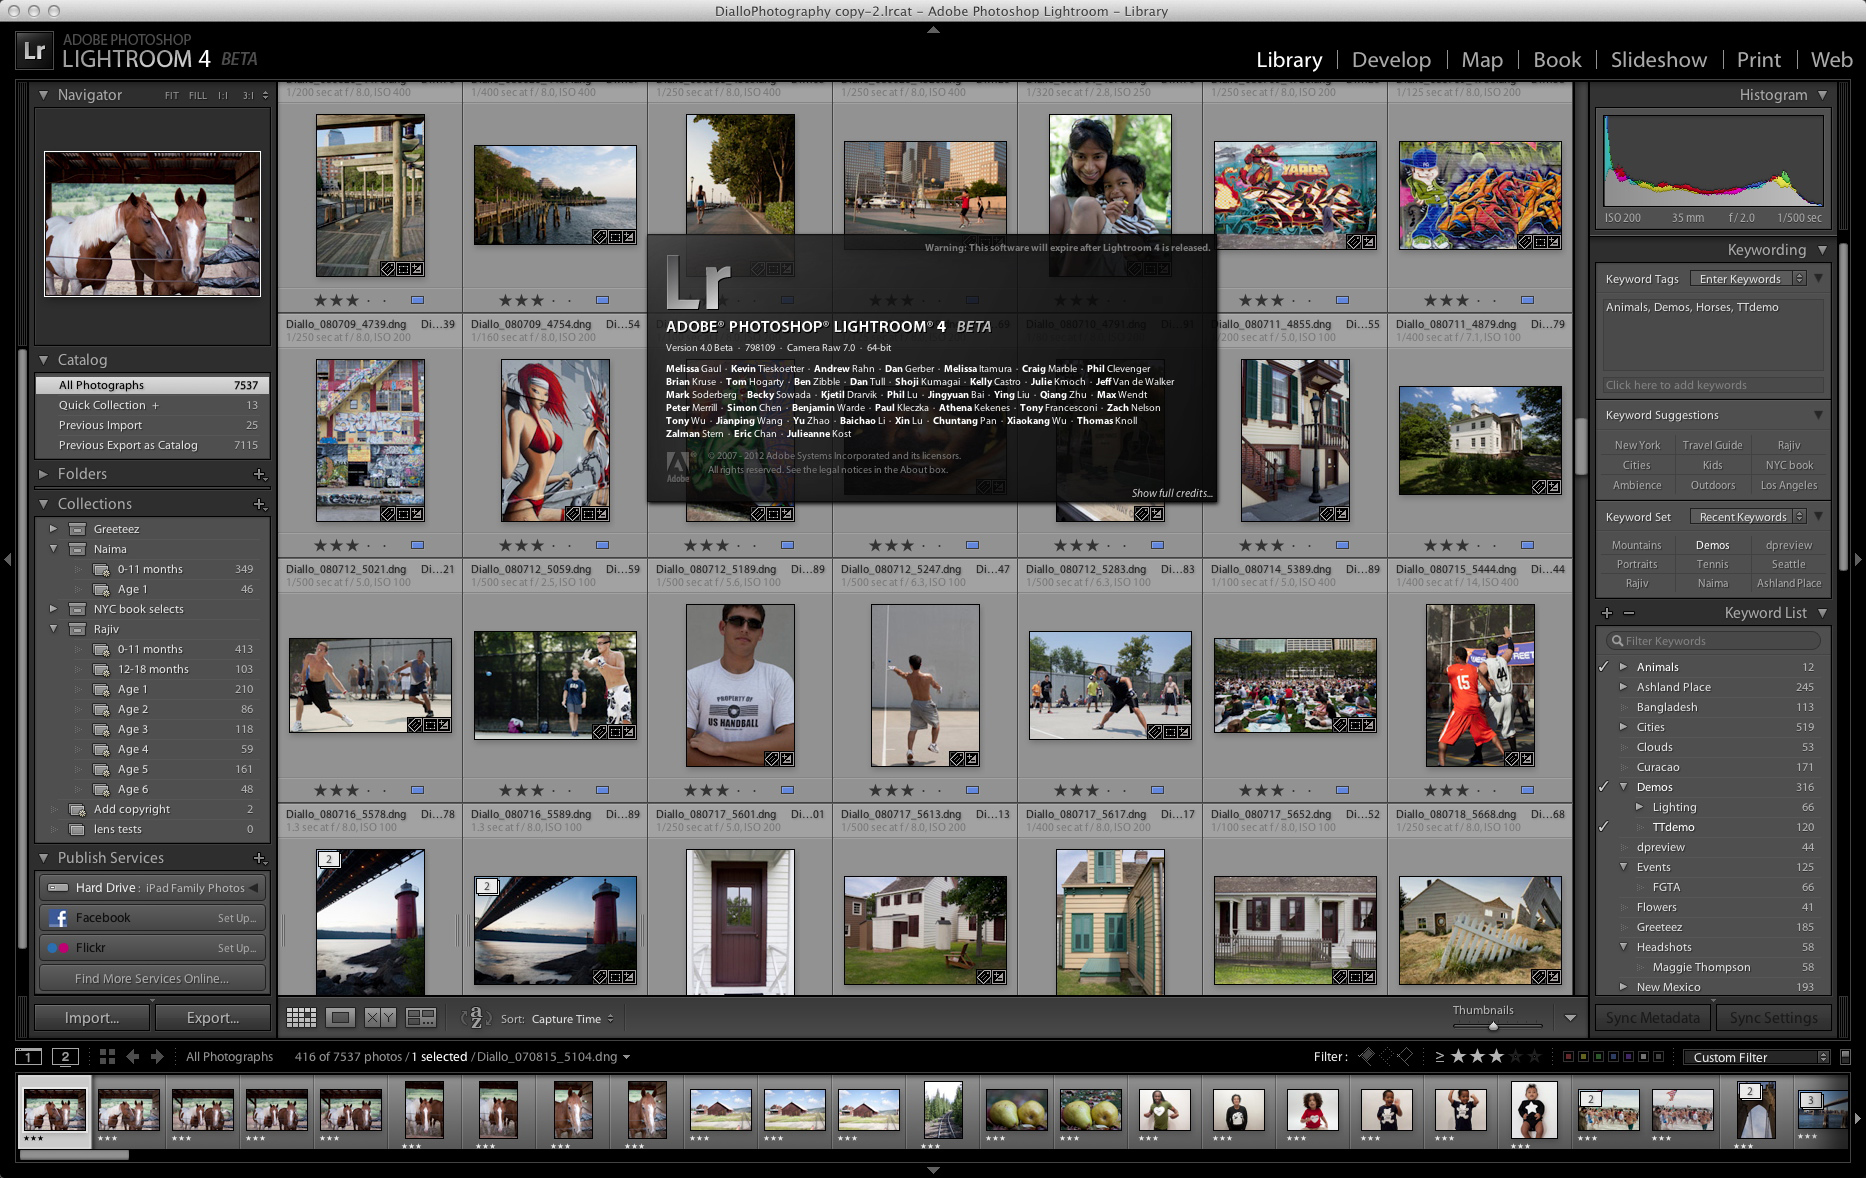 how much is Photoshop Lightroom 4 for mac?